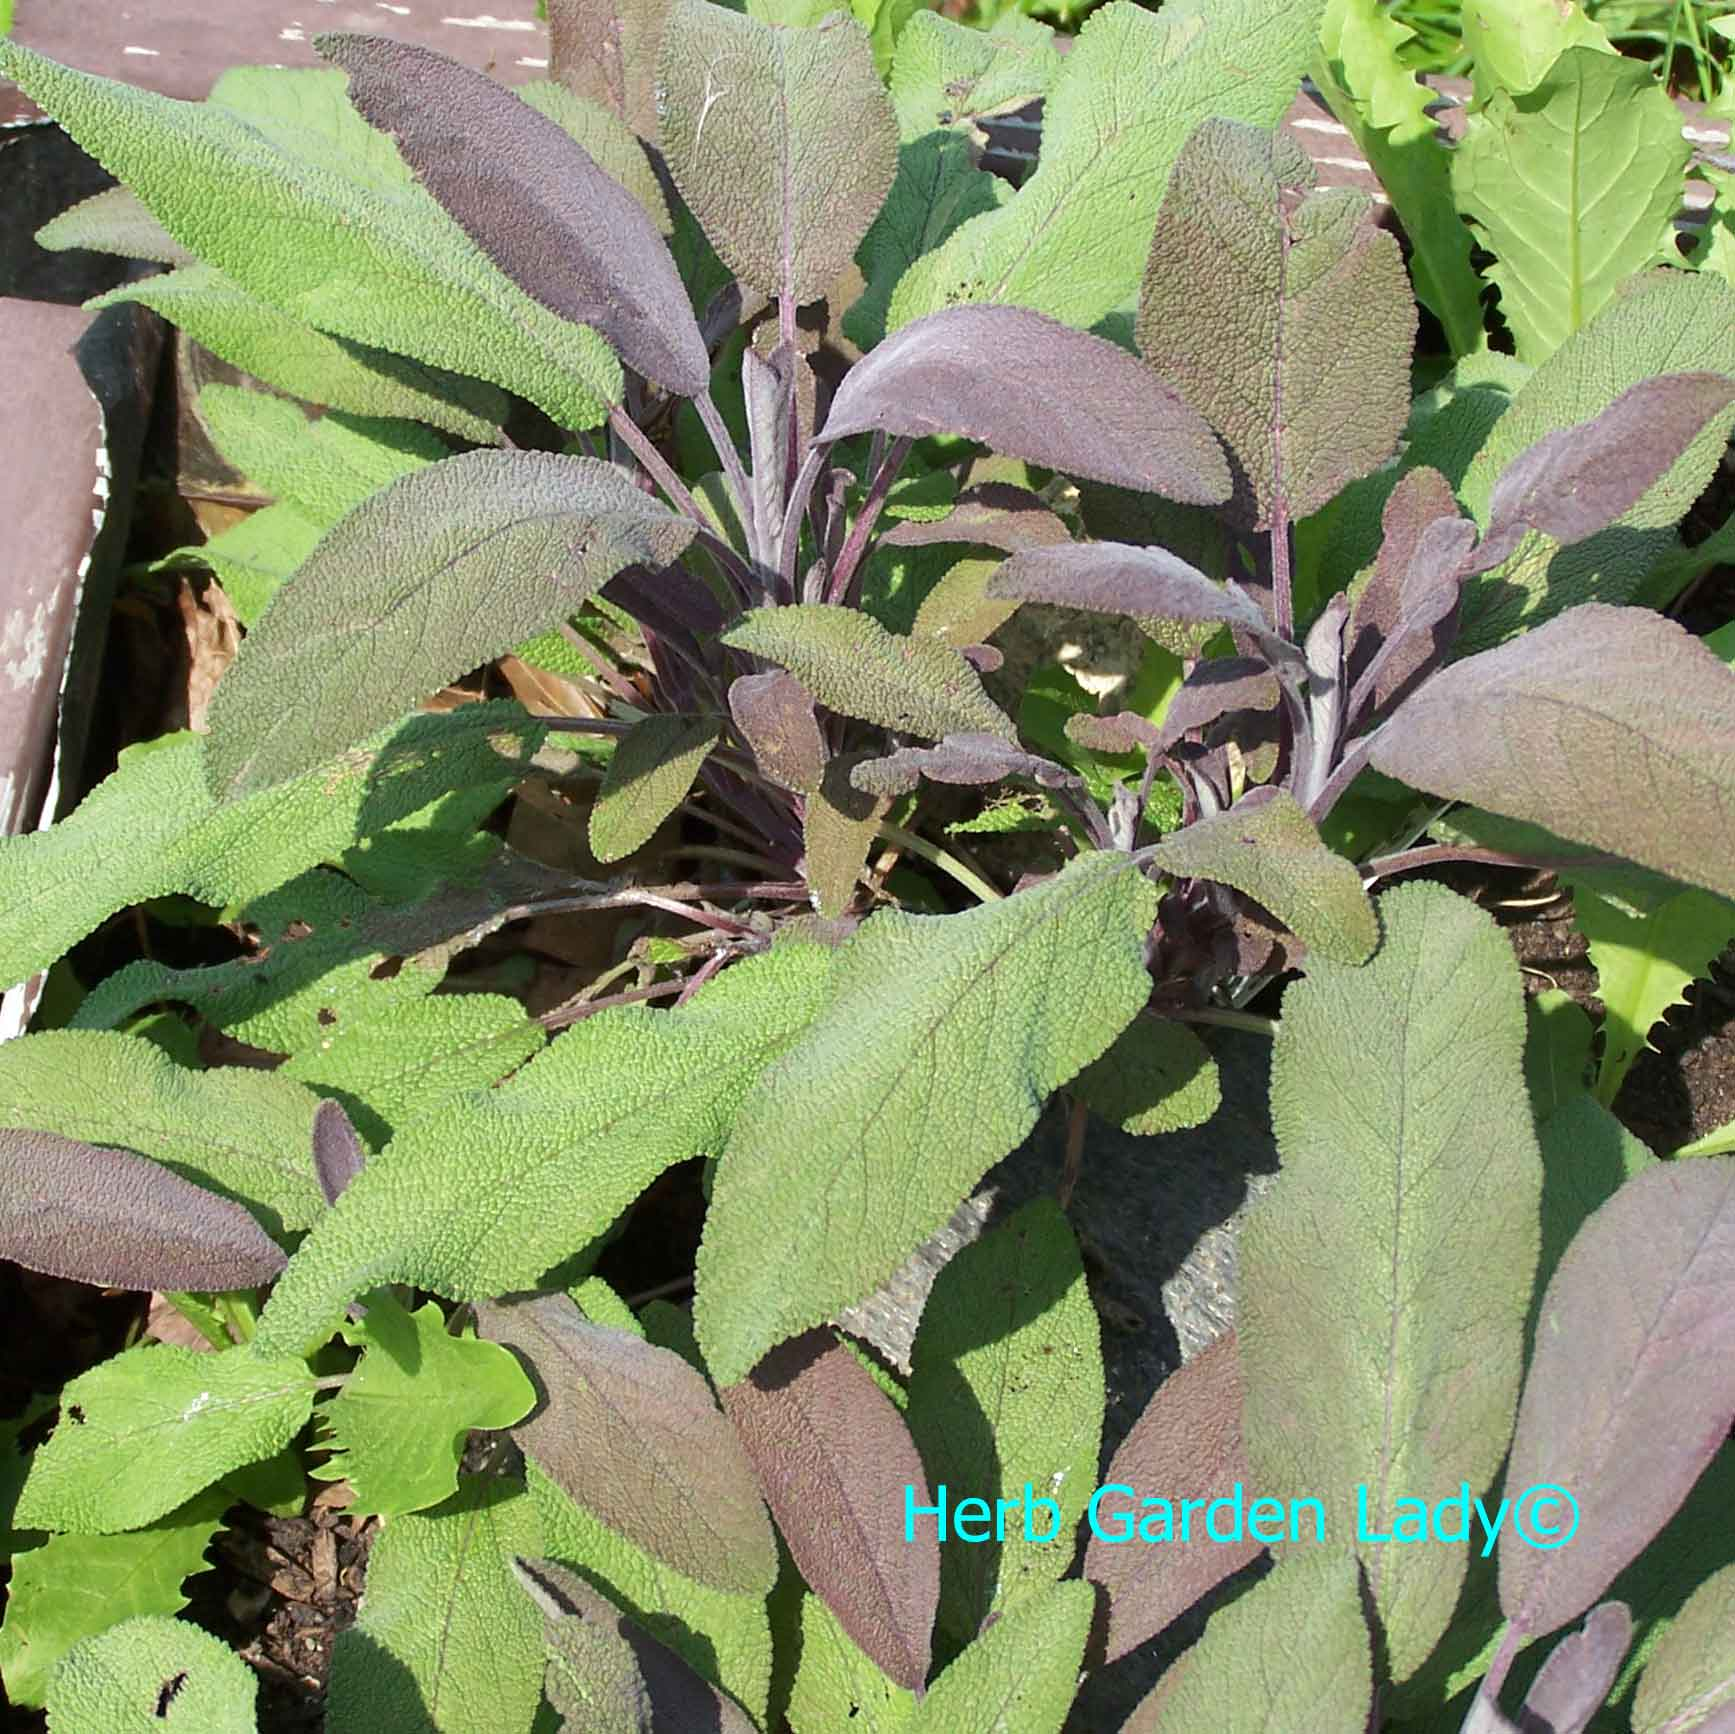 Sage herb used in aromatherapy for depression, fatigue, insect bites, menopause, and insomnia.